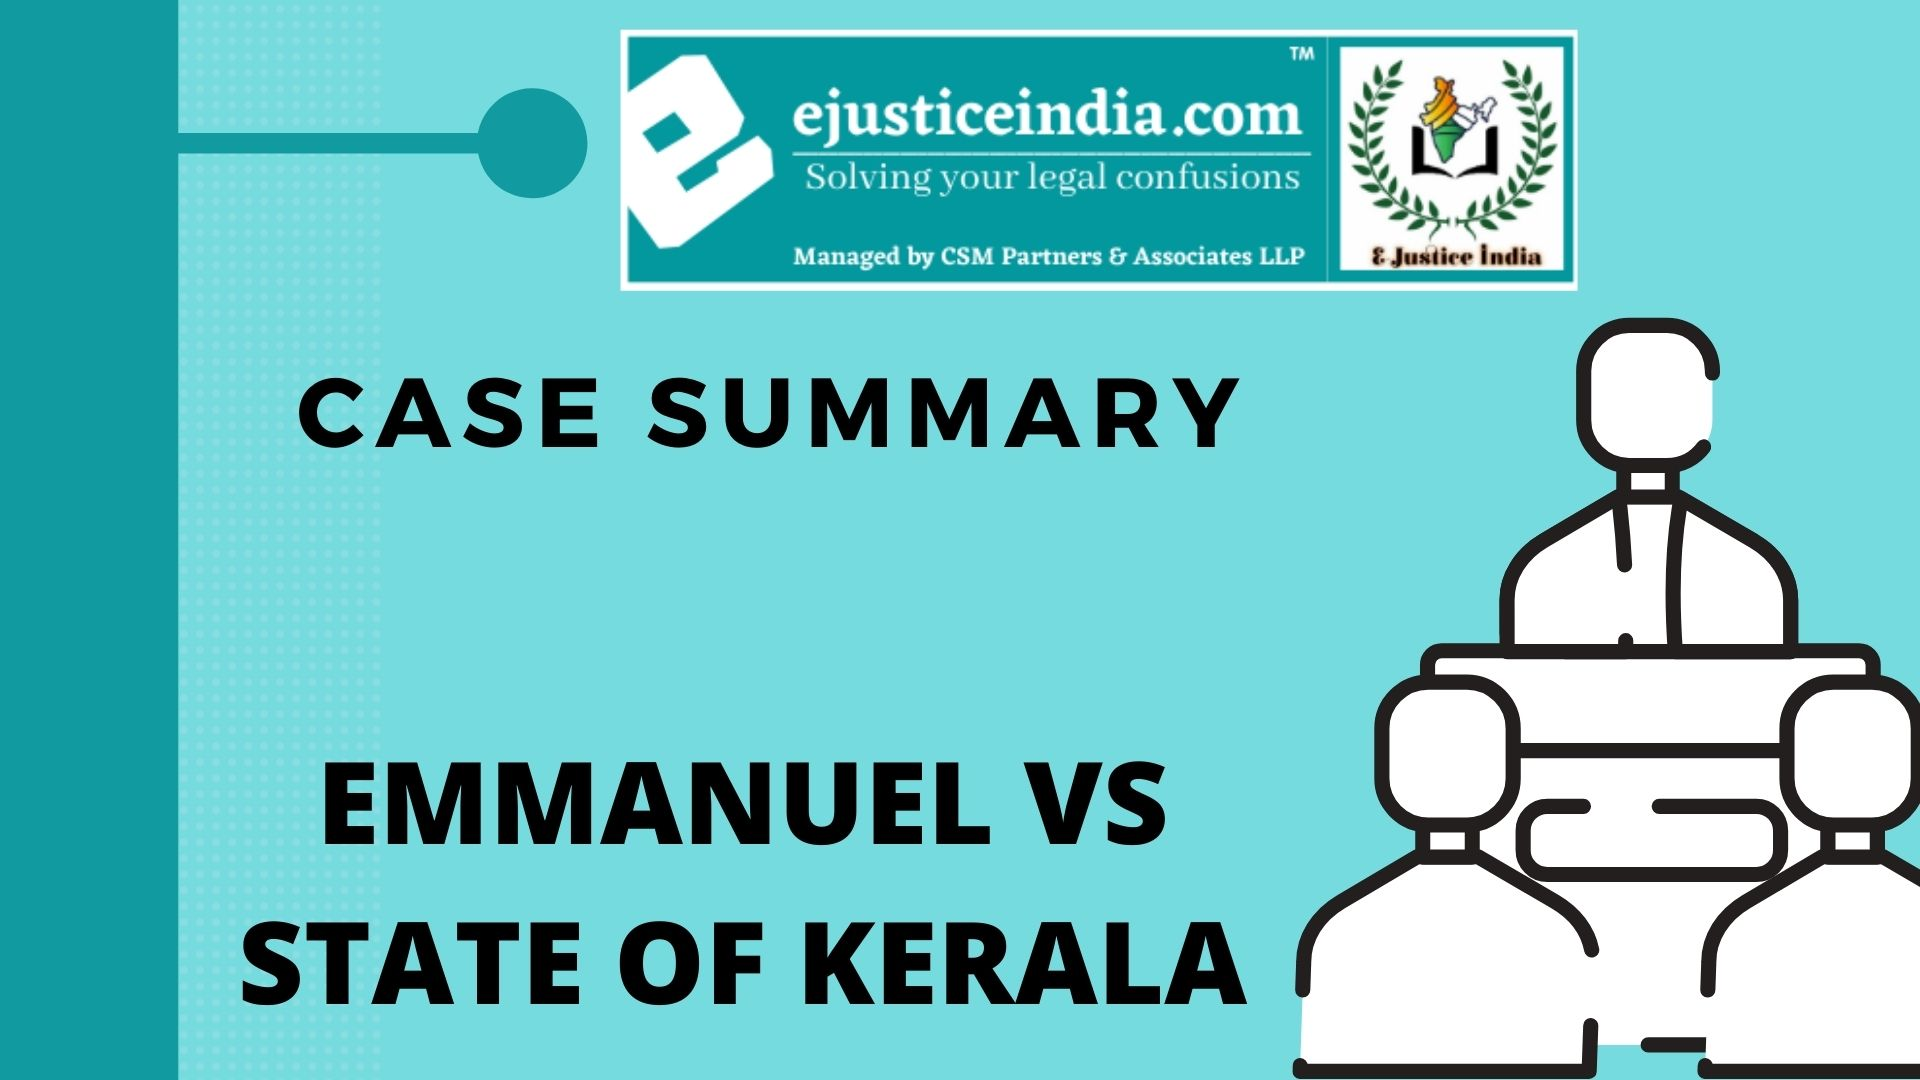 EMMANUEL VS STATE OF KERALA